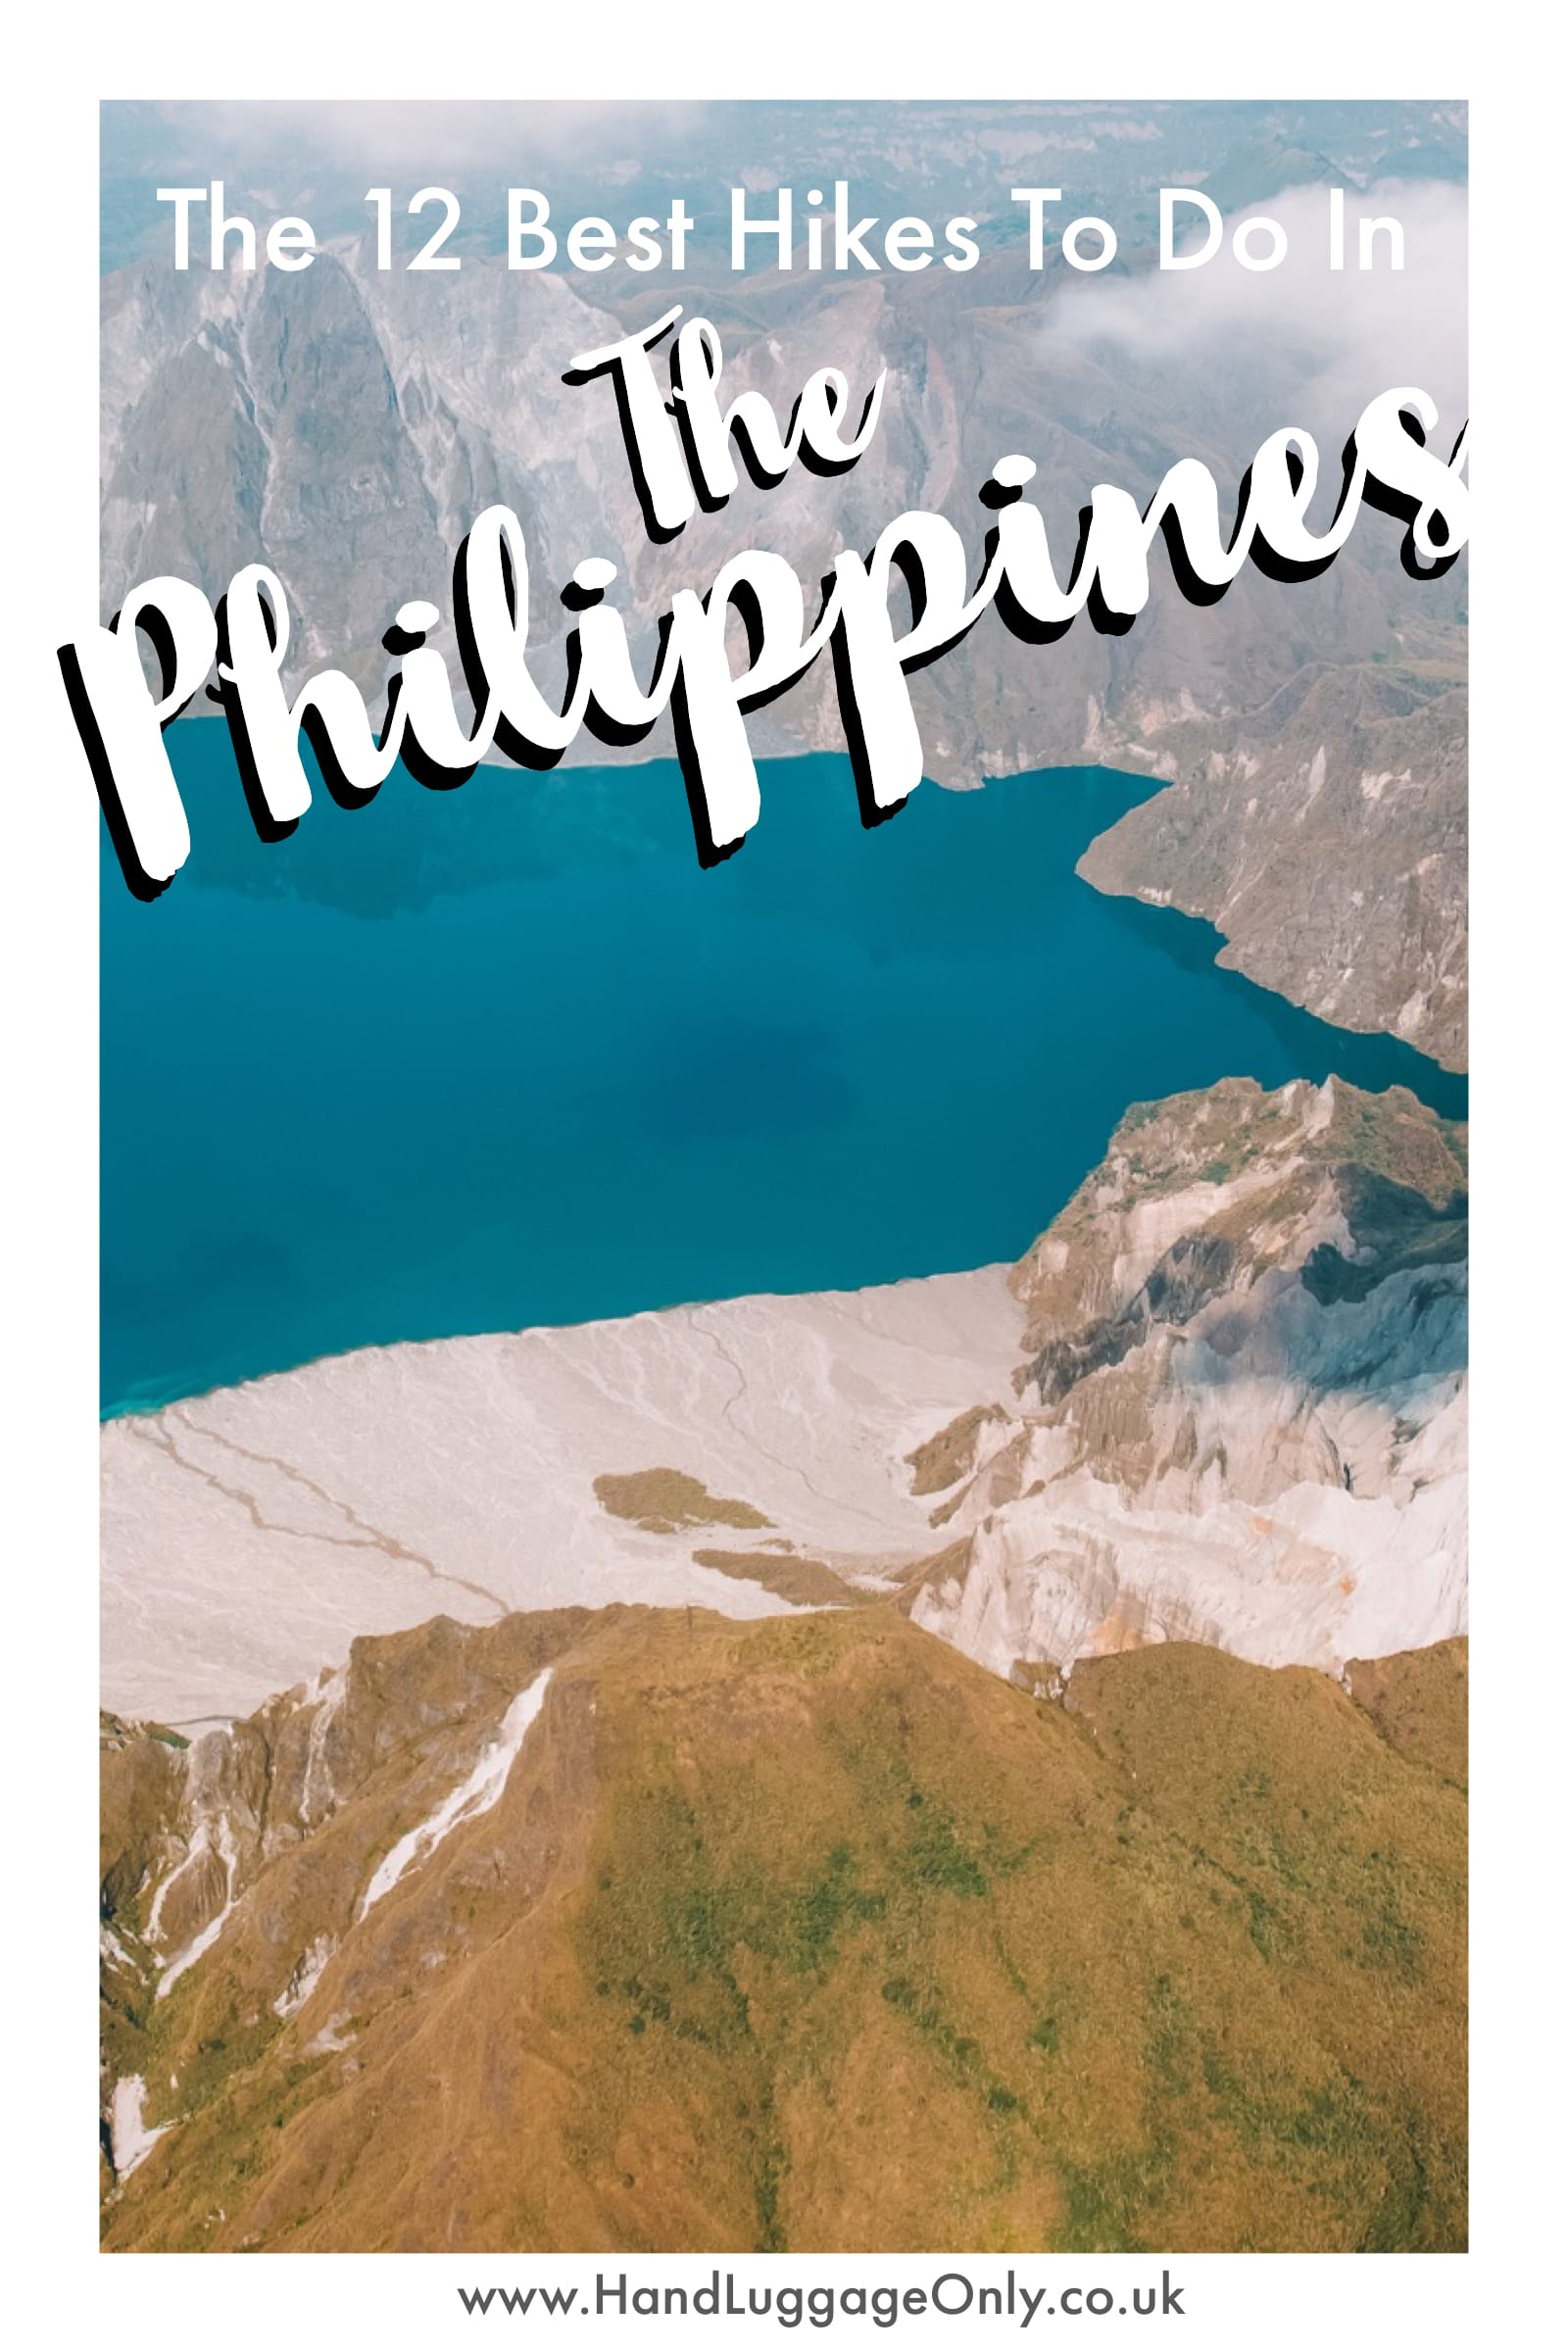 The 12 Best Hikes In The Philippines You Have To Experience (1)